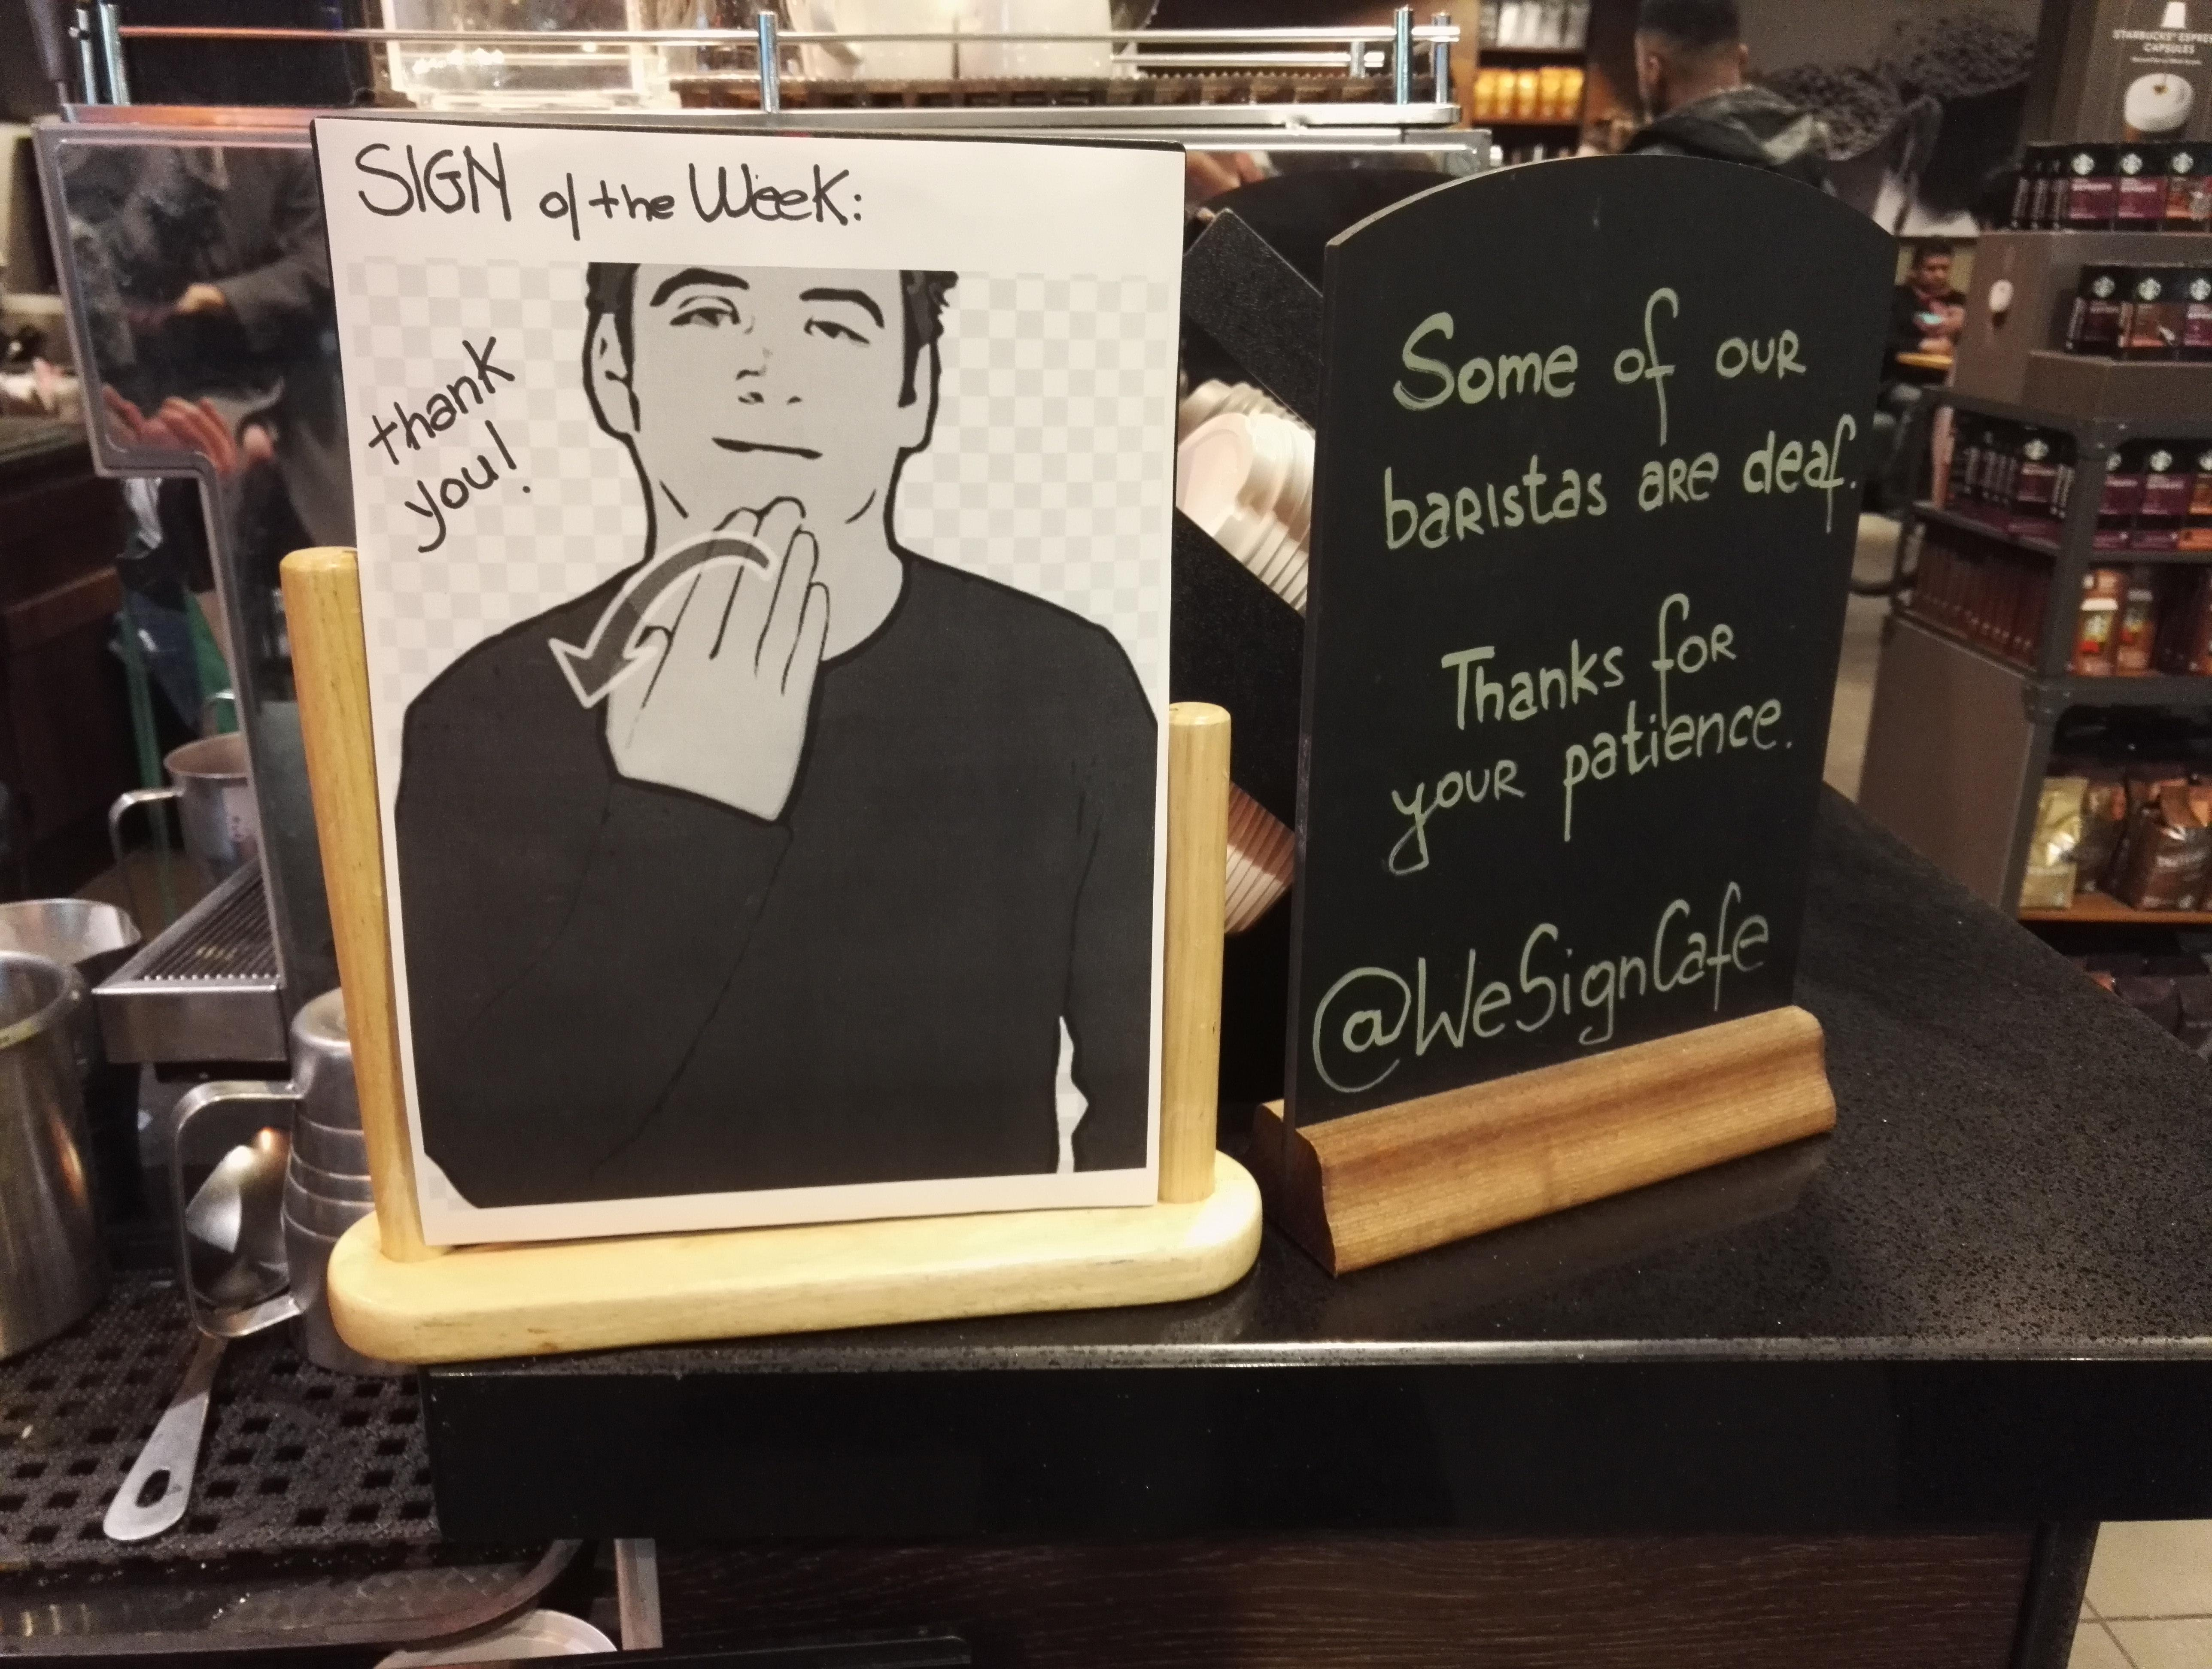 local starbucks does sign of the week for sign language put me like · local starbucks does 'sign of the week' for sign language